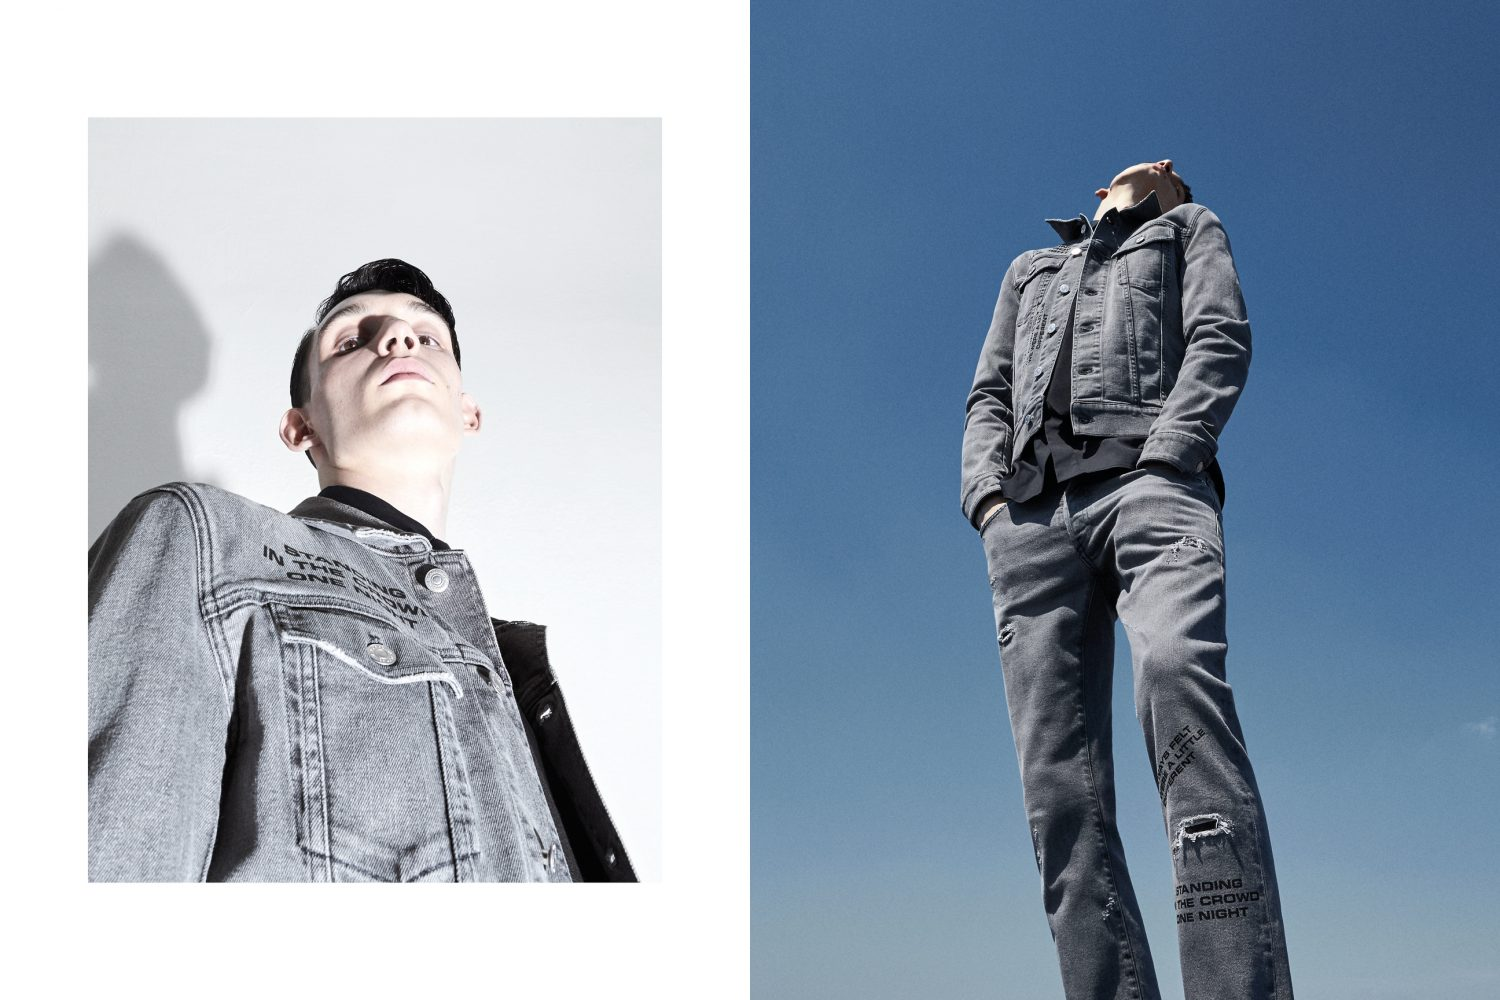 DIOR-DENIM-STYLISME-BY-MAURICIO-NARDI-PICTURE-BY-ALESSIO-BOLZONI-FOR-DIOR-HOMME_5